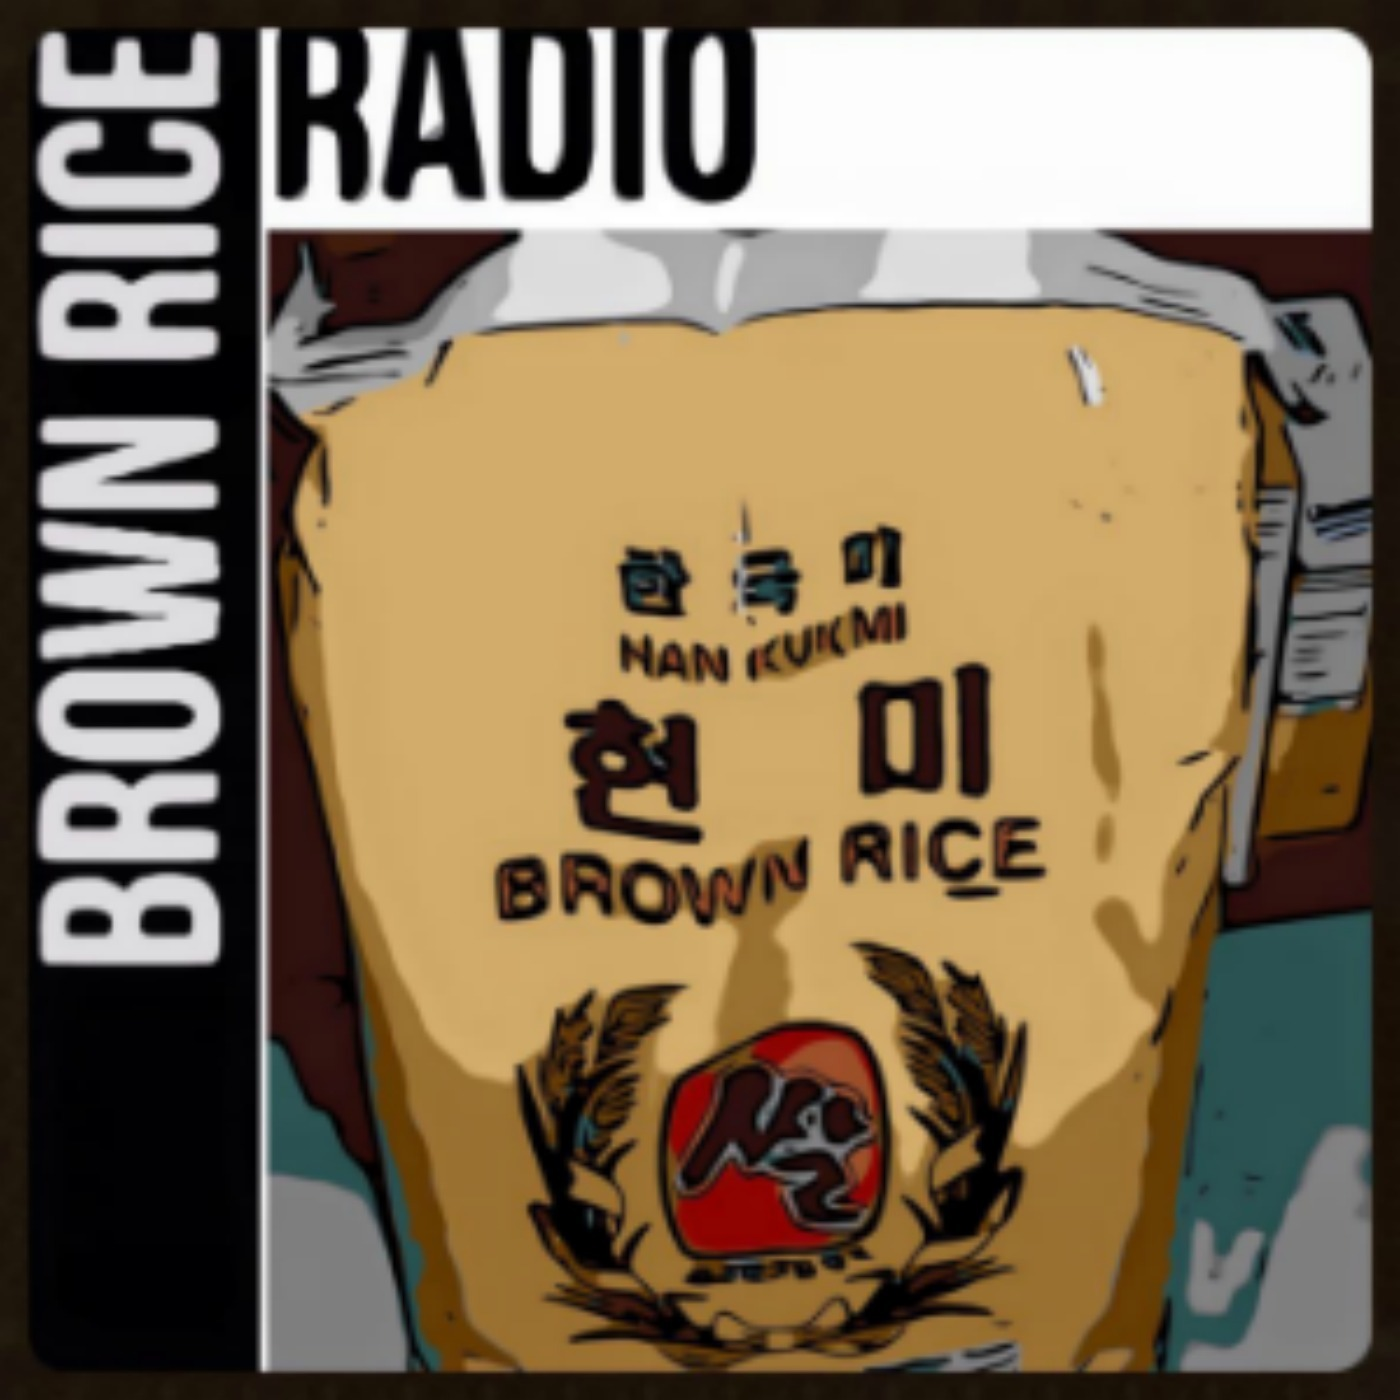 Brown Rice Radio